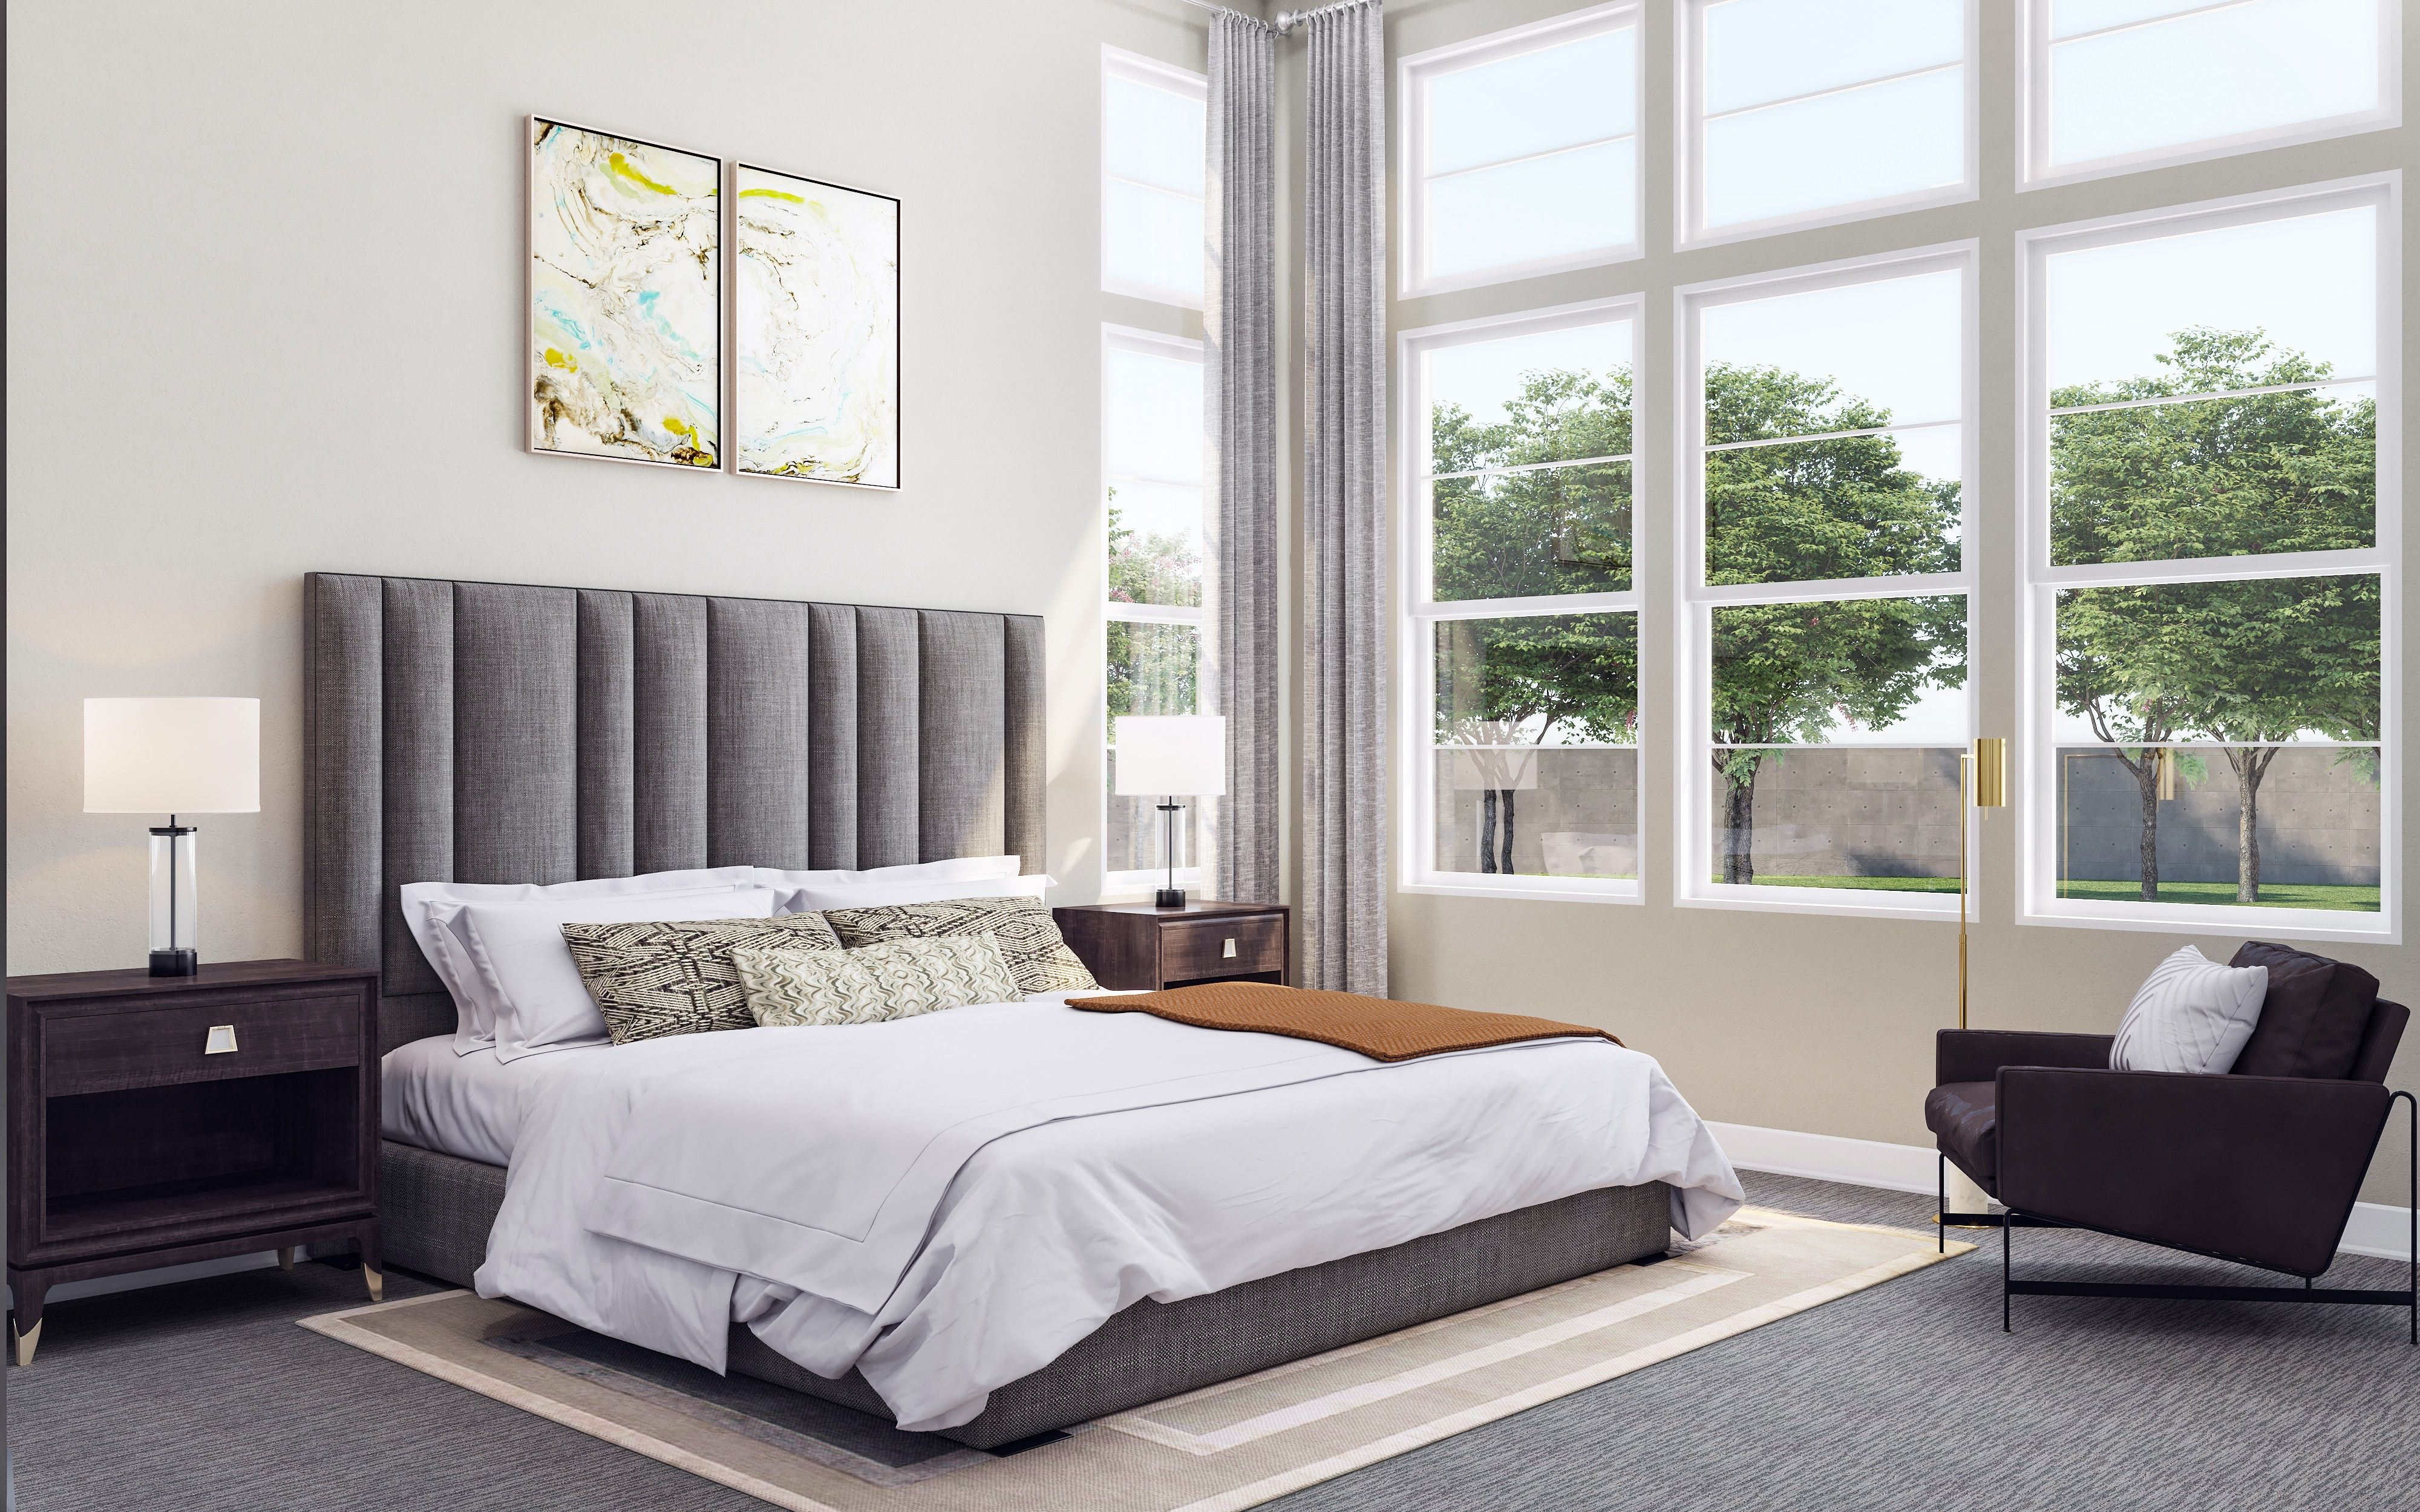 Bedroom featured in the Lot 1 By Lafferty Communities in Santa Rosa, CA